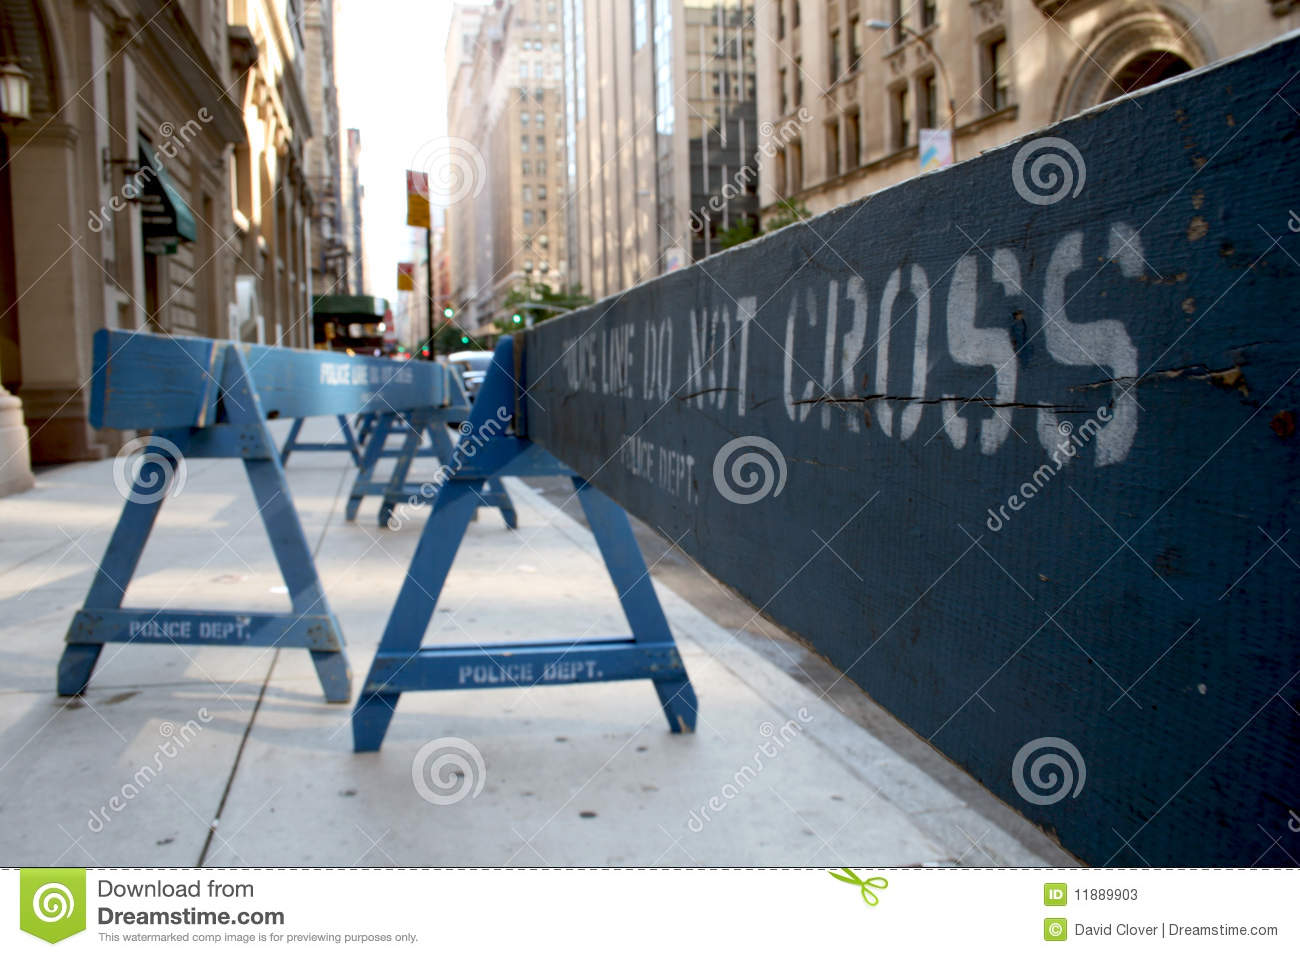 New York Police Picket Fence Stock Image Image Of Picket